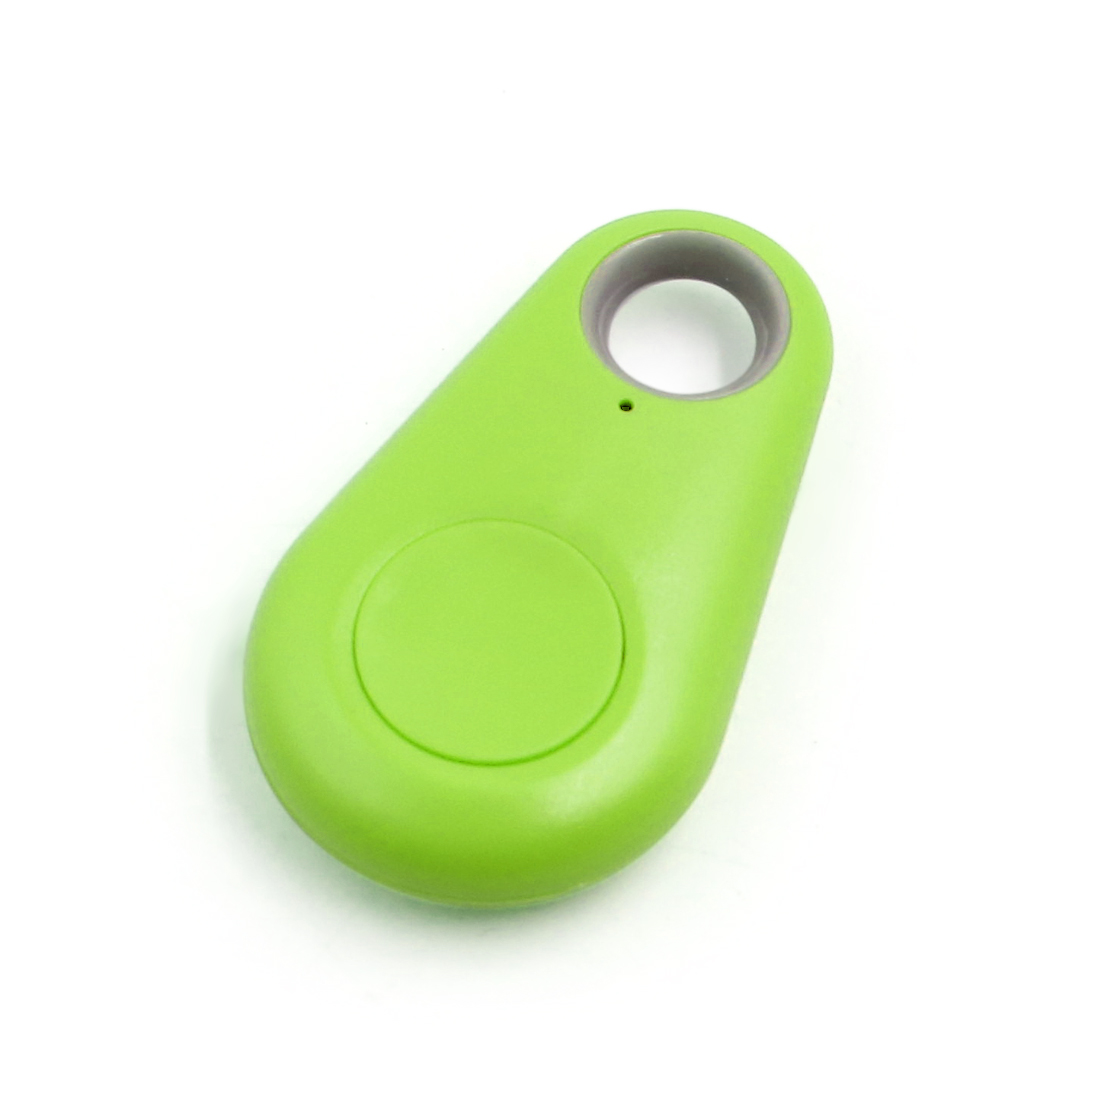 Green Anti-Lost Theft Device Alarm bluetooth Remote Tracker Key Finder Phone Box